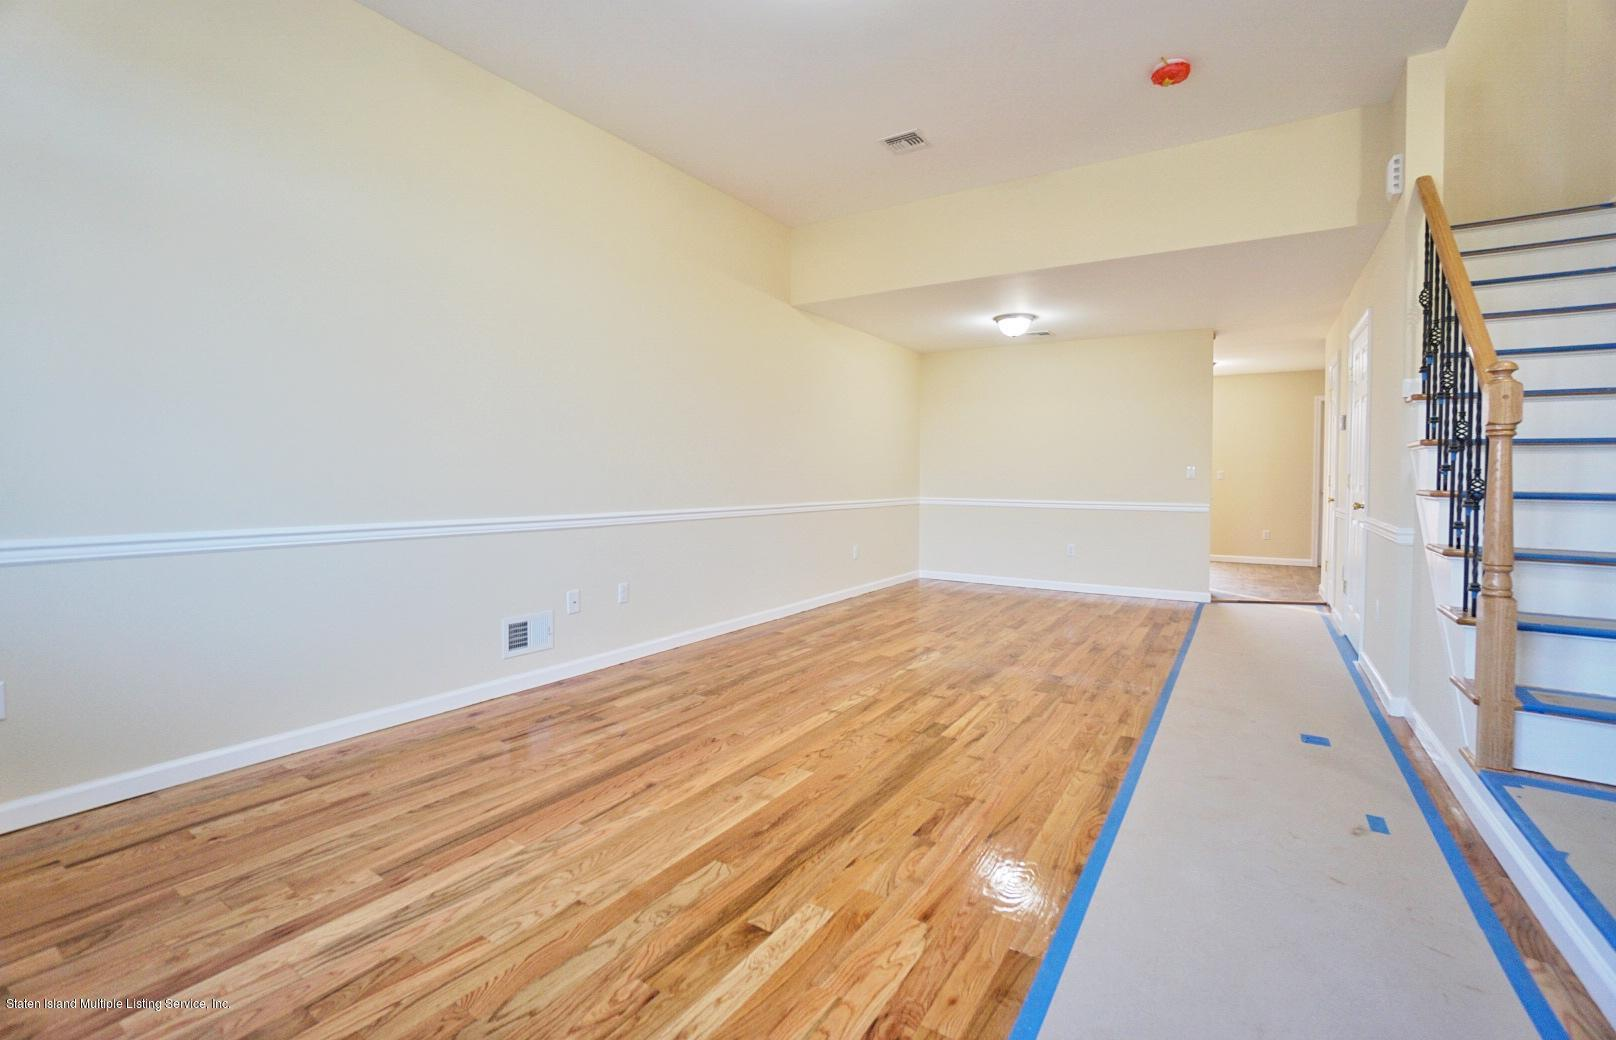 Single Family - Attached 34 Bamberger Lane  Staten Island, NY 10312, MLS-1135521-2